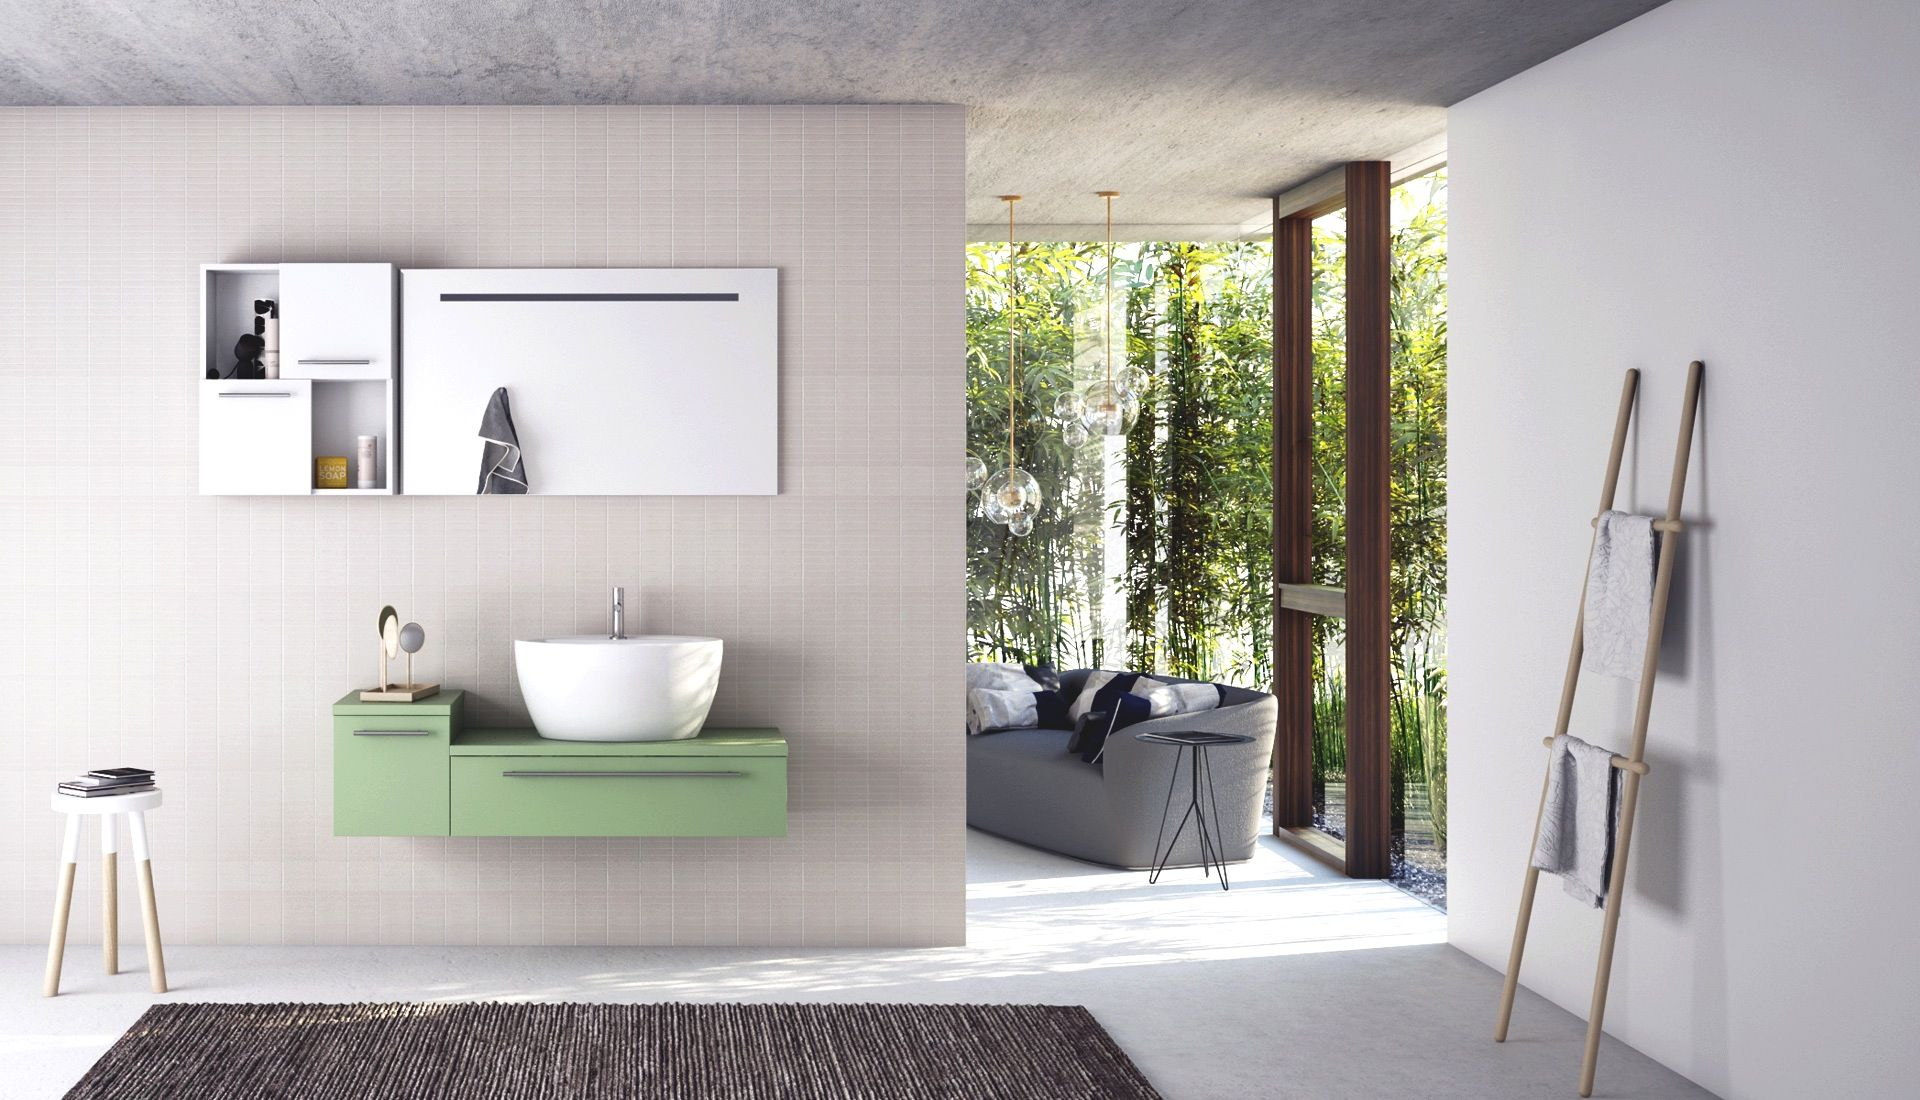 naturedesign #bathroom #home #modernstyle #arredobagno #puntotre ...